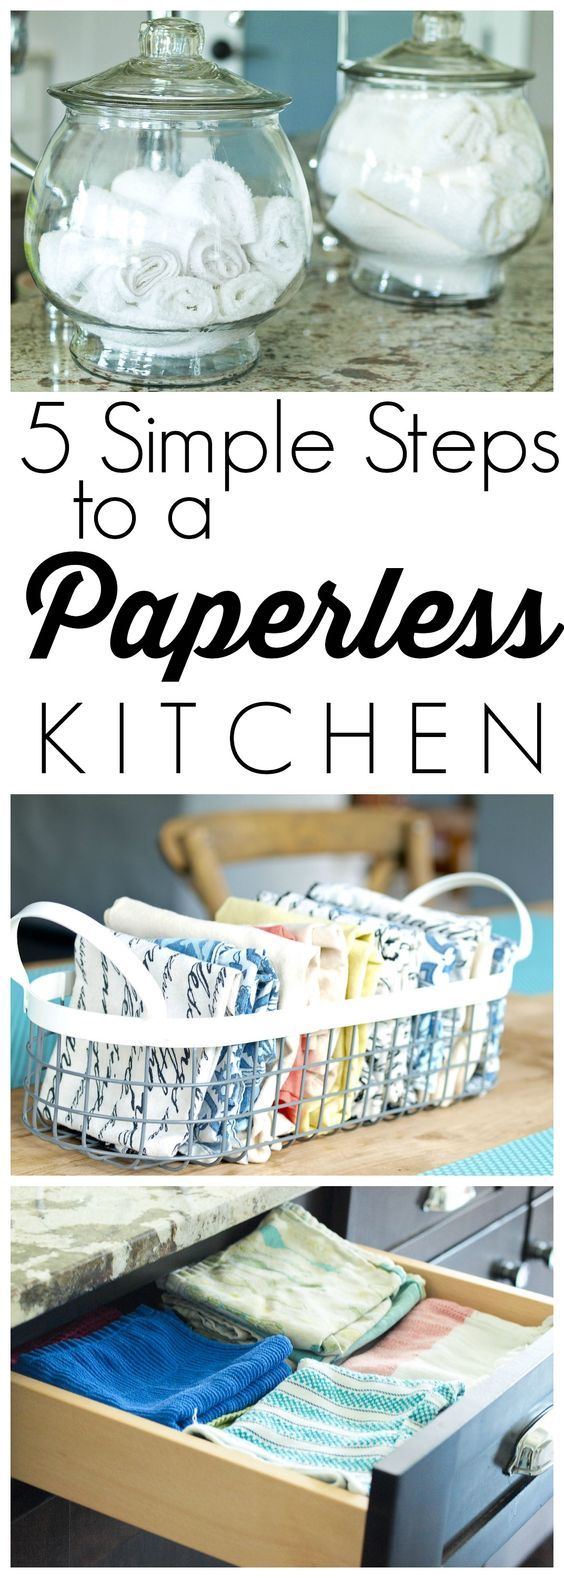 5 Simple Tips for Going Paperless in your Kitchen. It's much easier and more convenient than you think! Great idea for organizing your life and home in the kitchen to be paper-free.